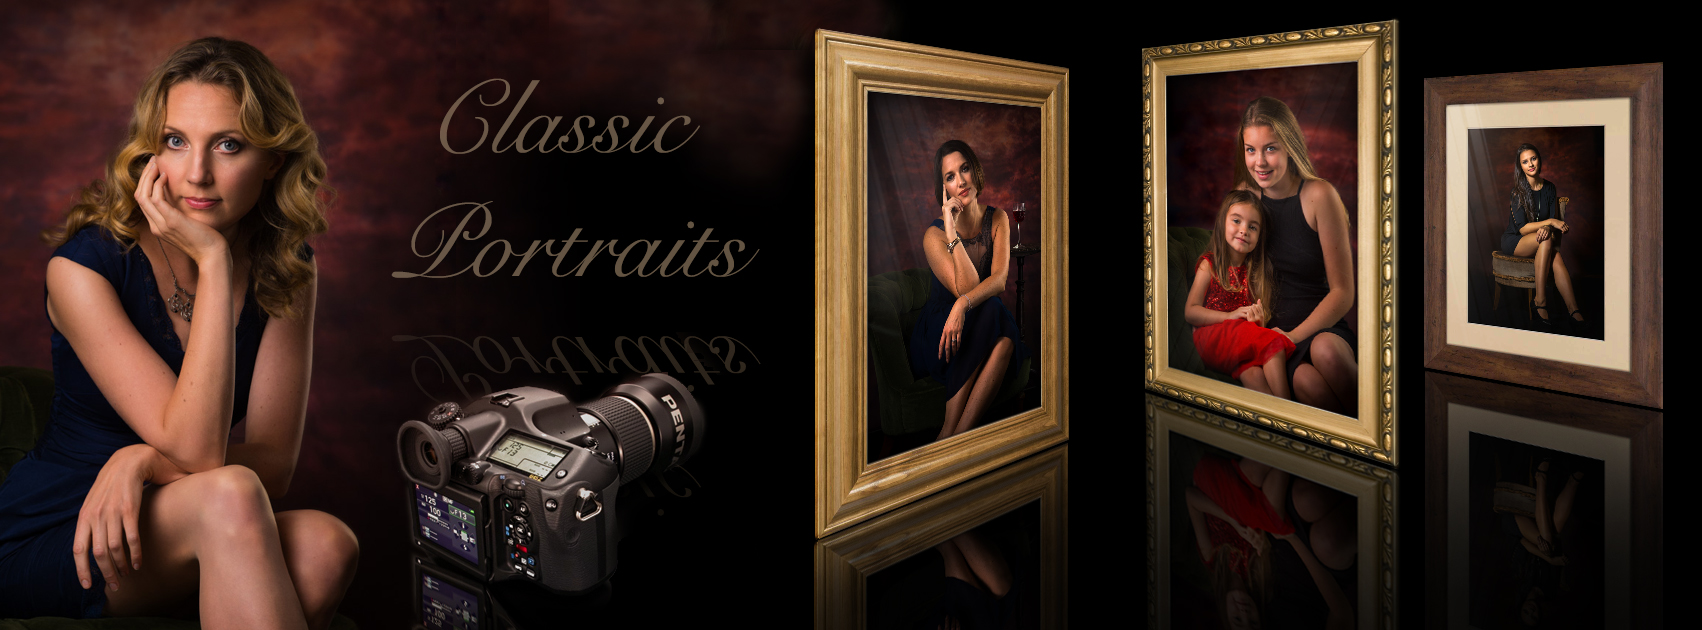 f_classic-portraits-cover-with-cam